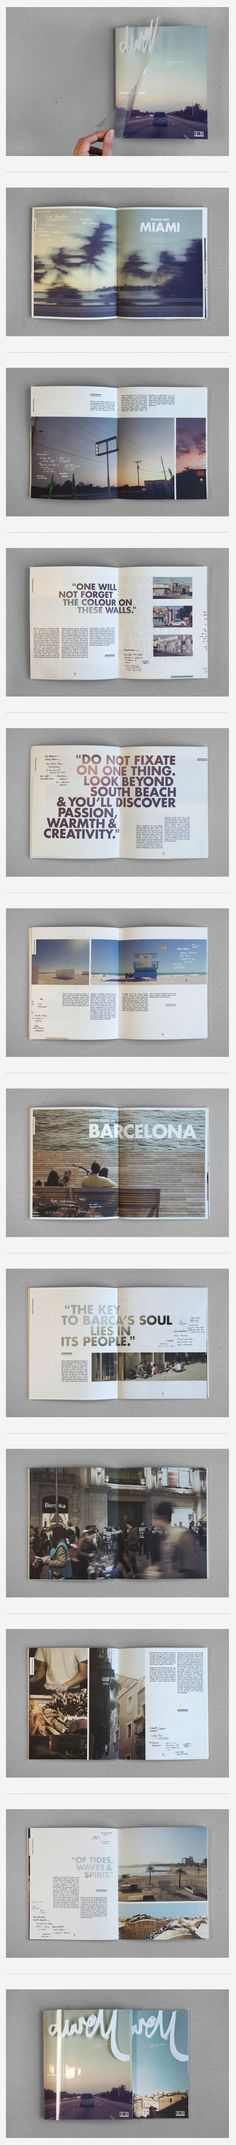 Dwell - Coastal Cities Revisited / magazine visual identity and layout pitch by Sidney Lim   Uses transparency cover